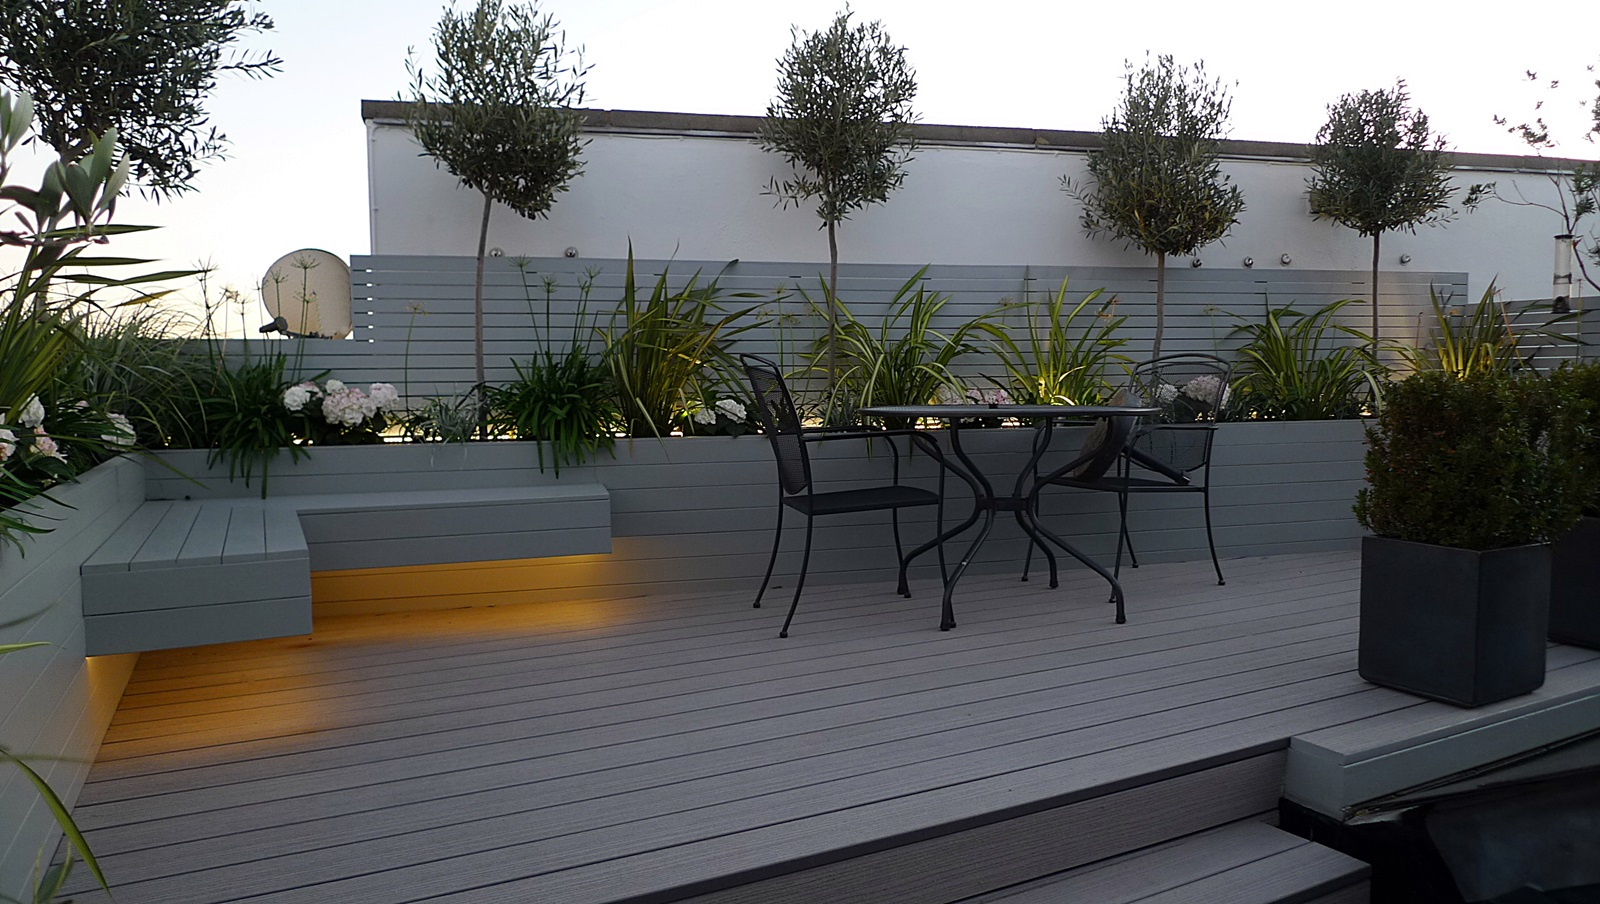 London garden blog london garden blog gardens from for Images of garden decking